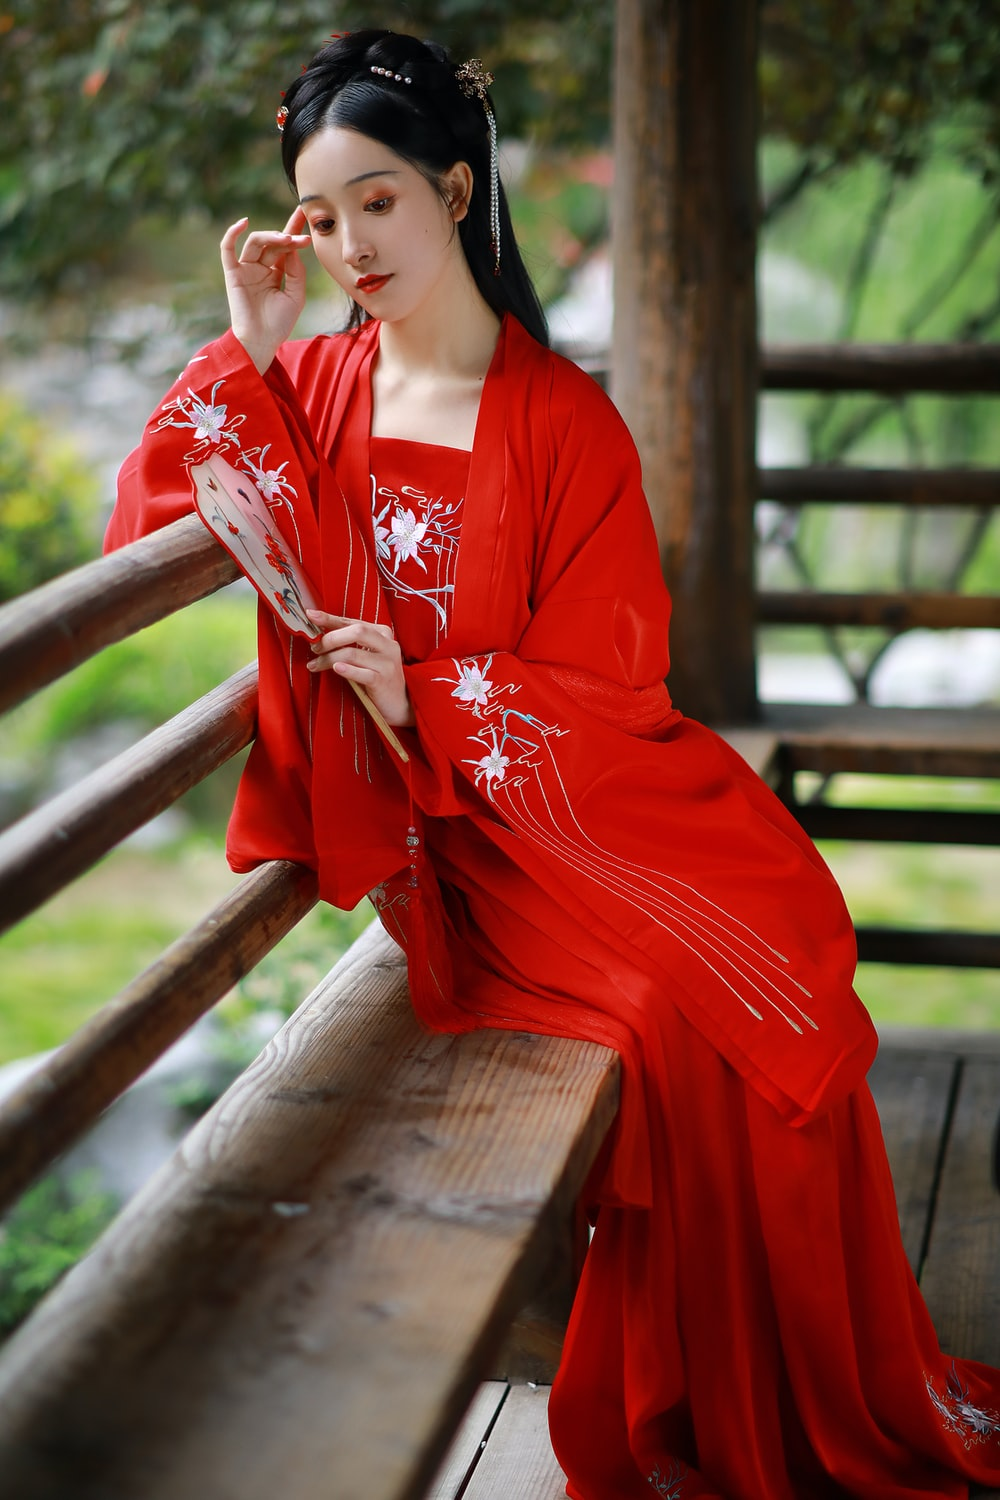 woman in red and white floral kimono sitting on brown wooden bench during daytime